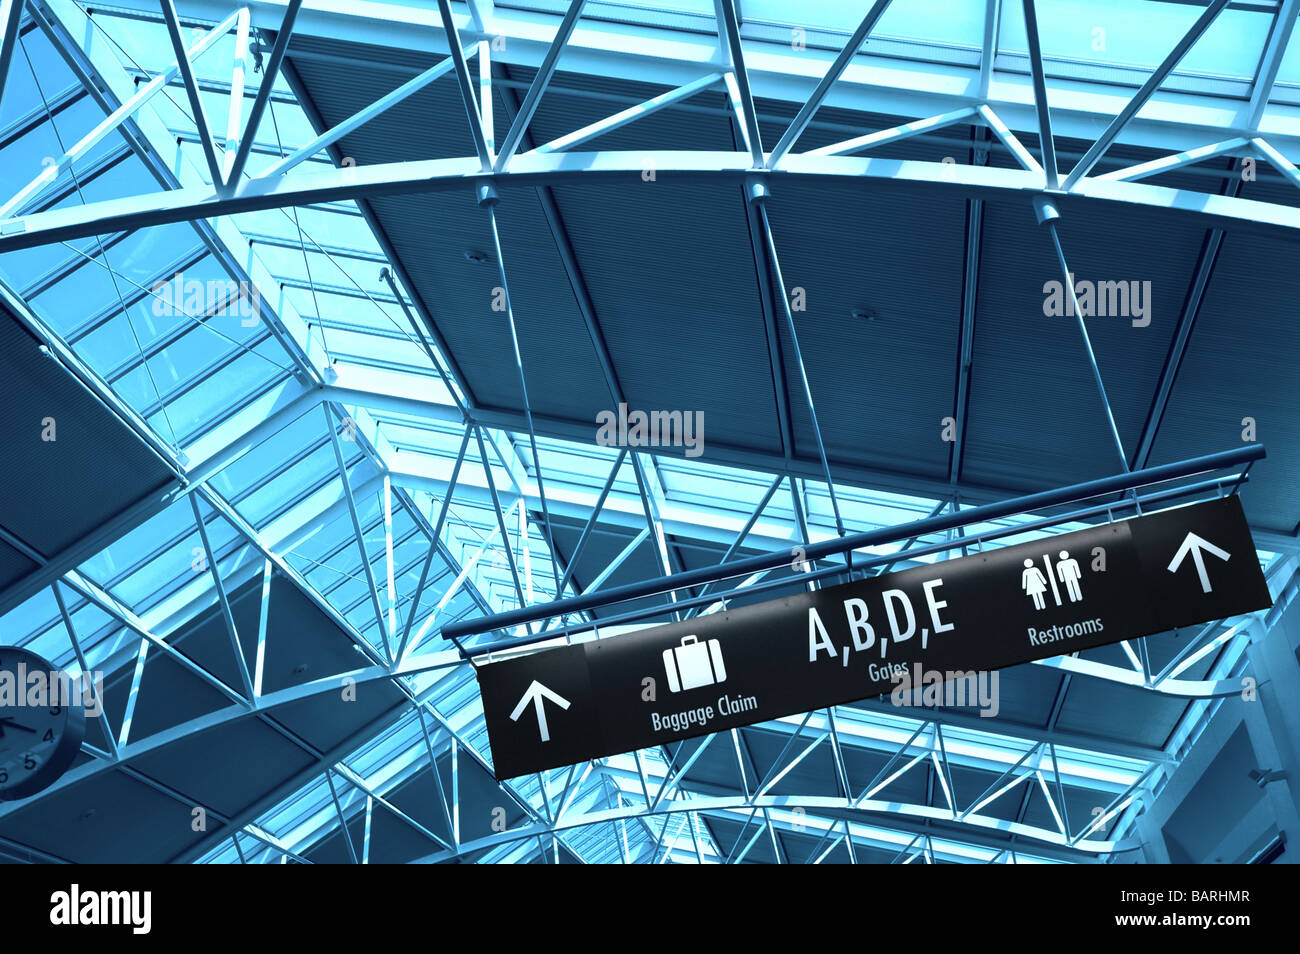 Directional Signs Inside an Airport Terminal Stock Photo